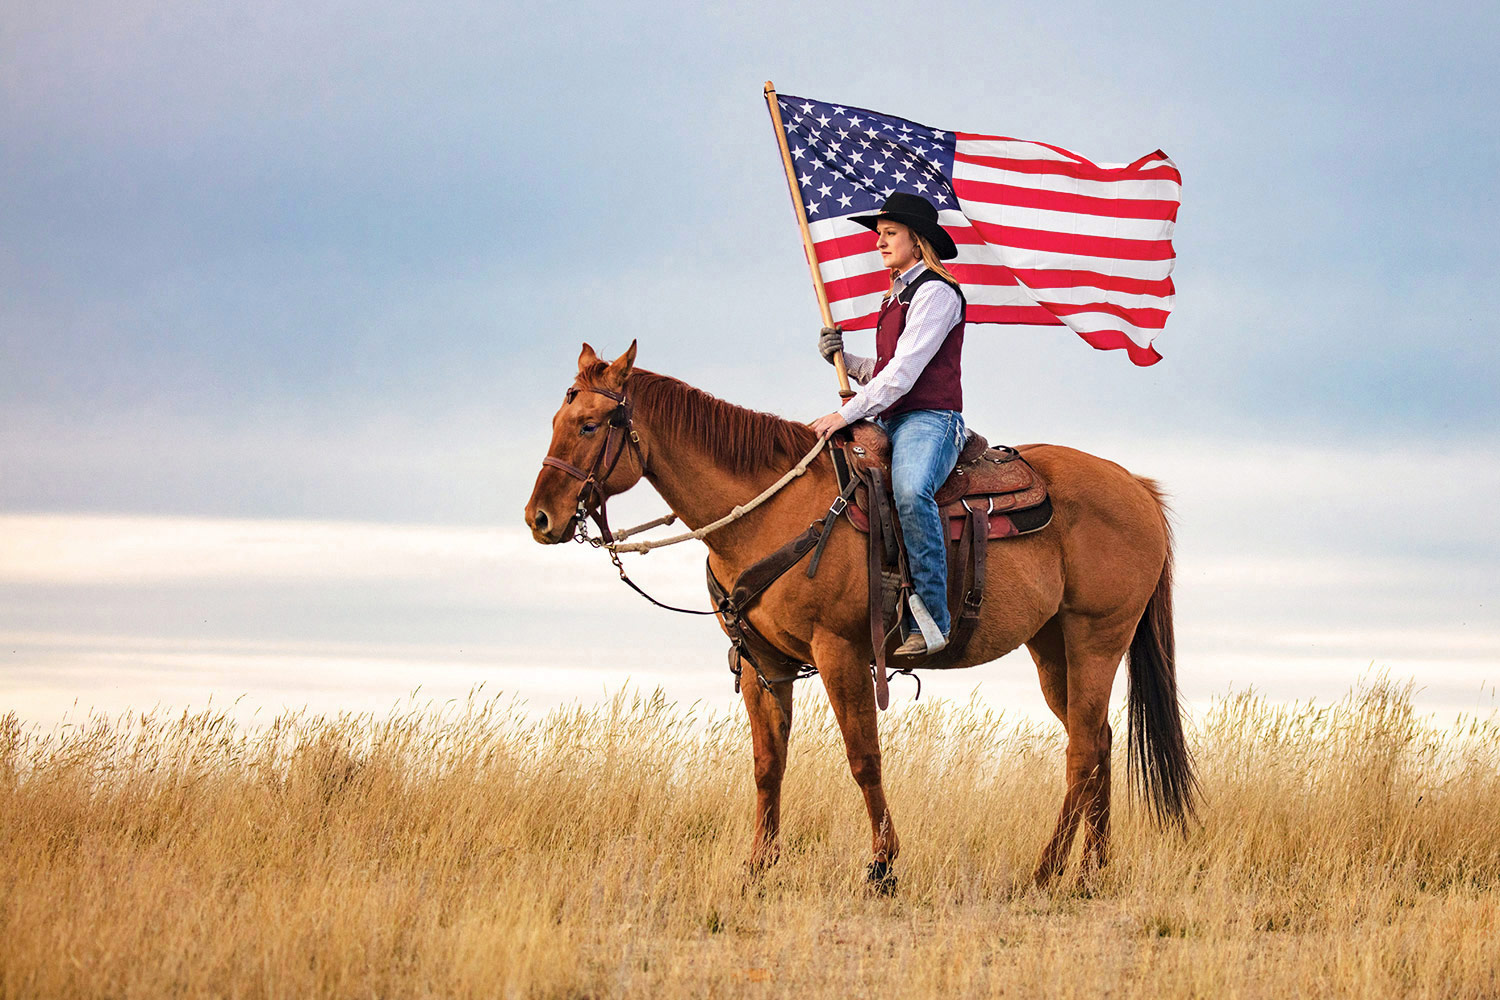 A cowgirl riding horseback with an American flag near Box Elder, Montana. To see more cowgirl photos click here:  Cowgirl Photos